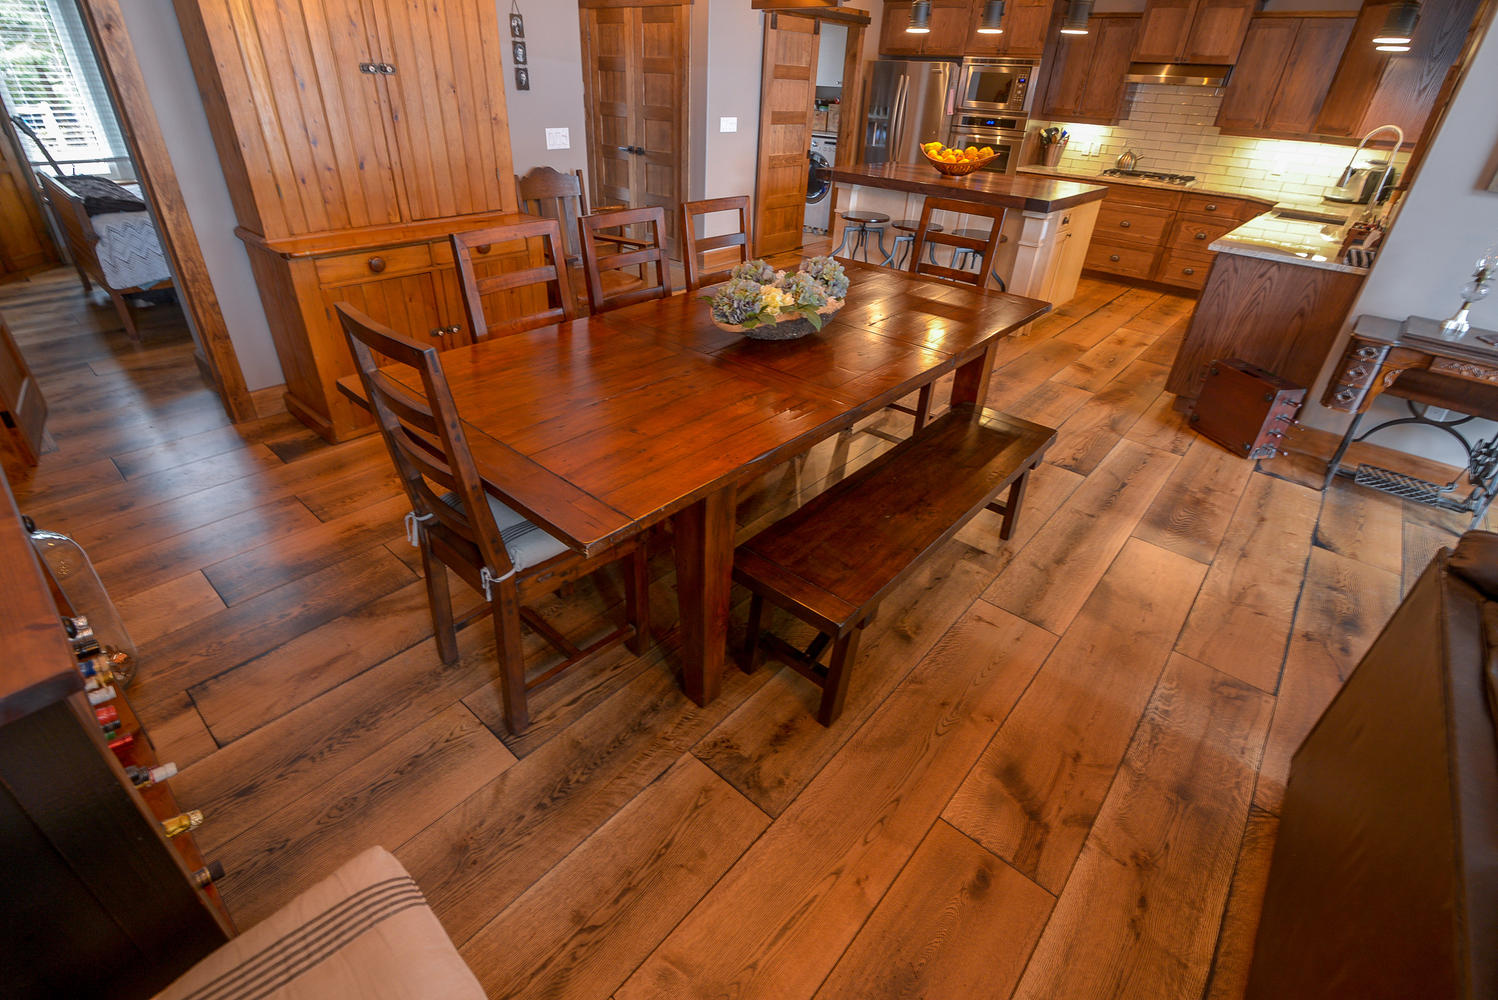 Pictures and photos of Wide plank white oak flooring